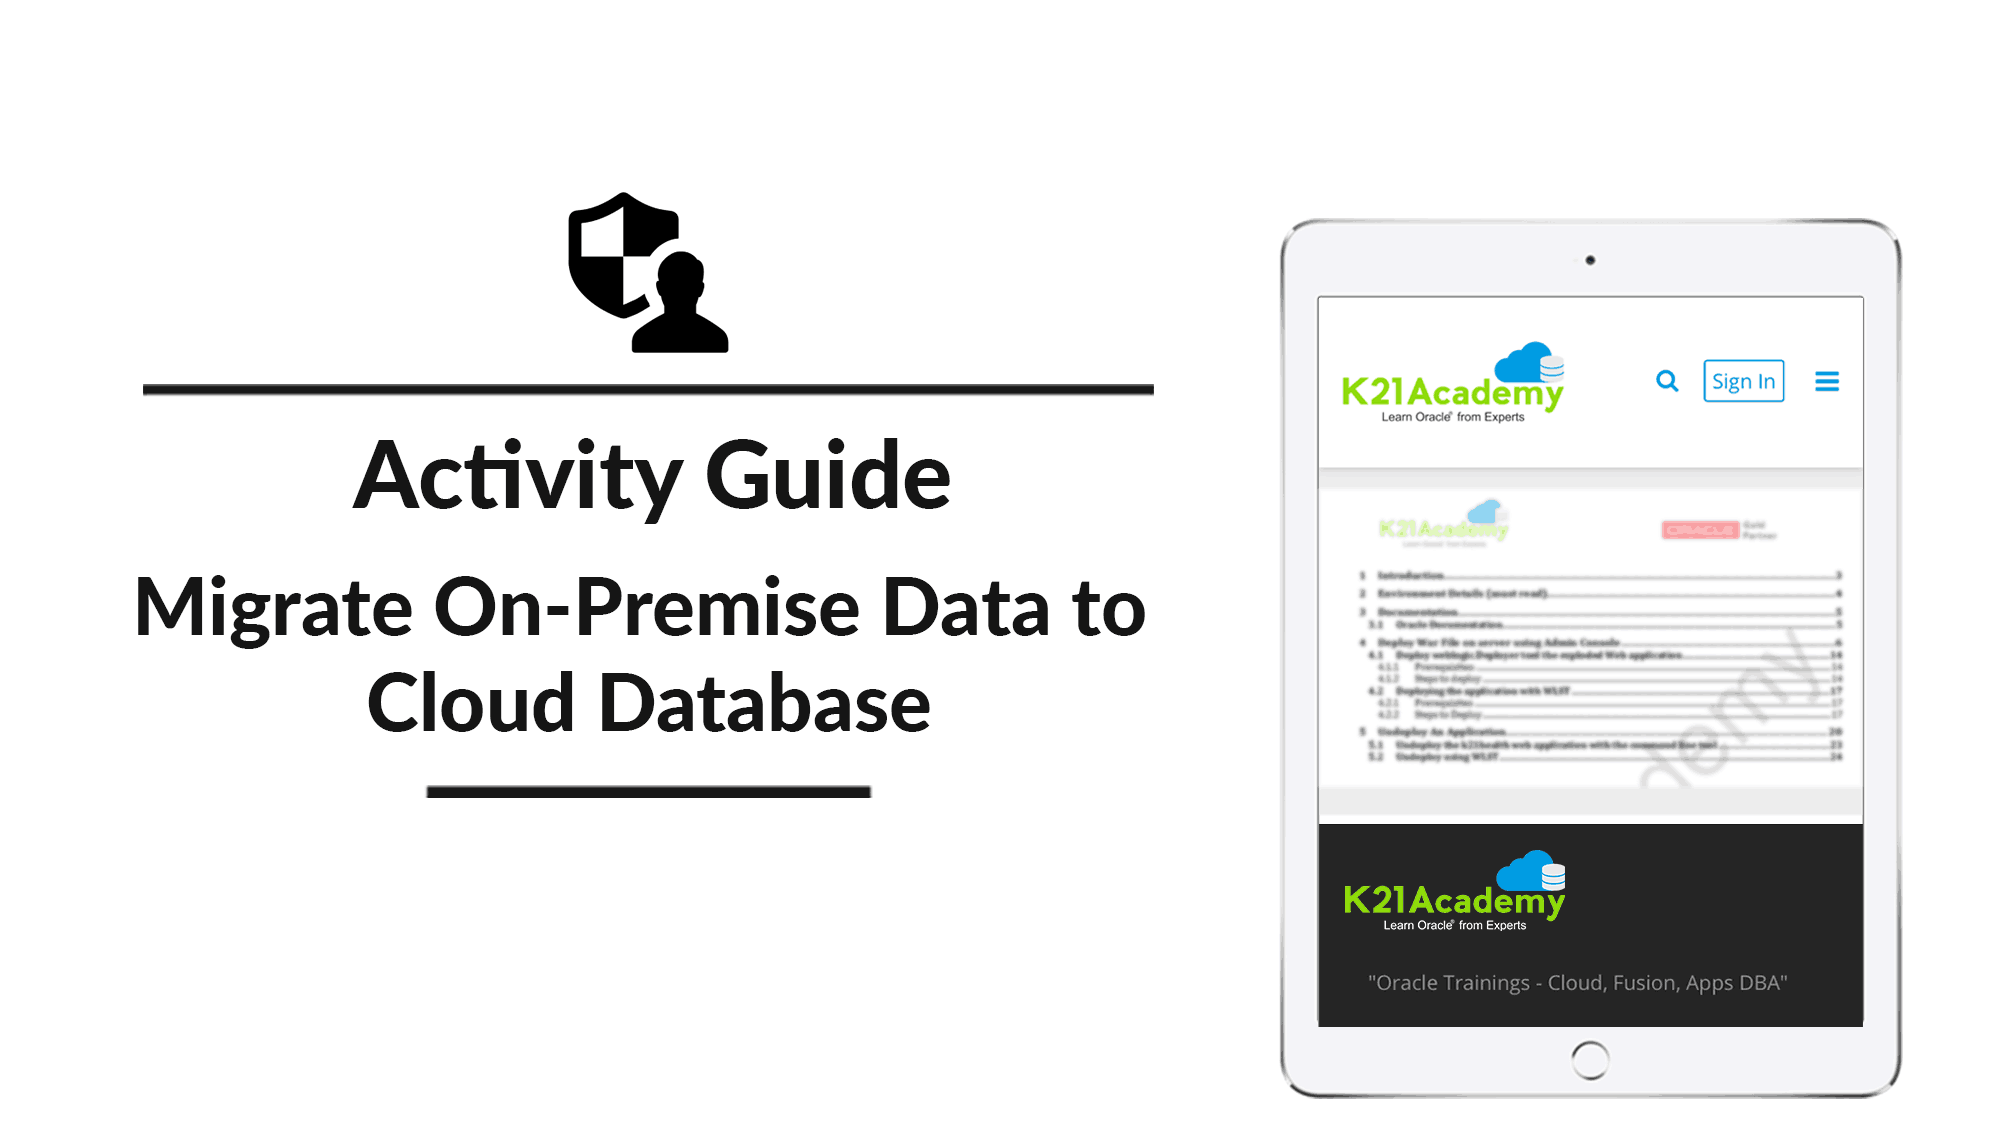 Migrate On-Premises Data To Cloud Database